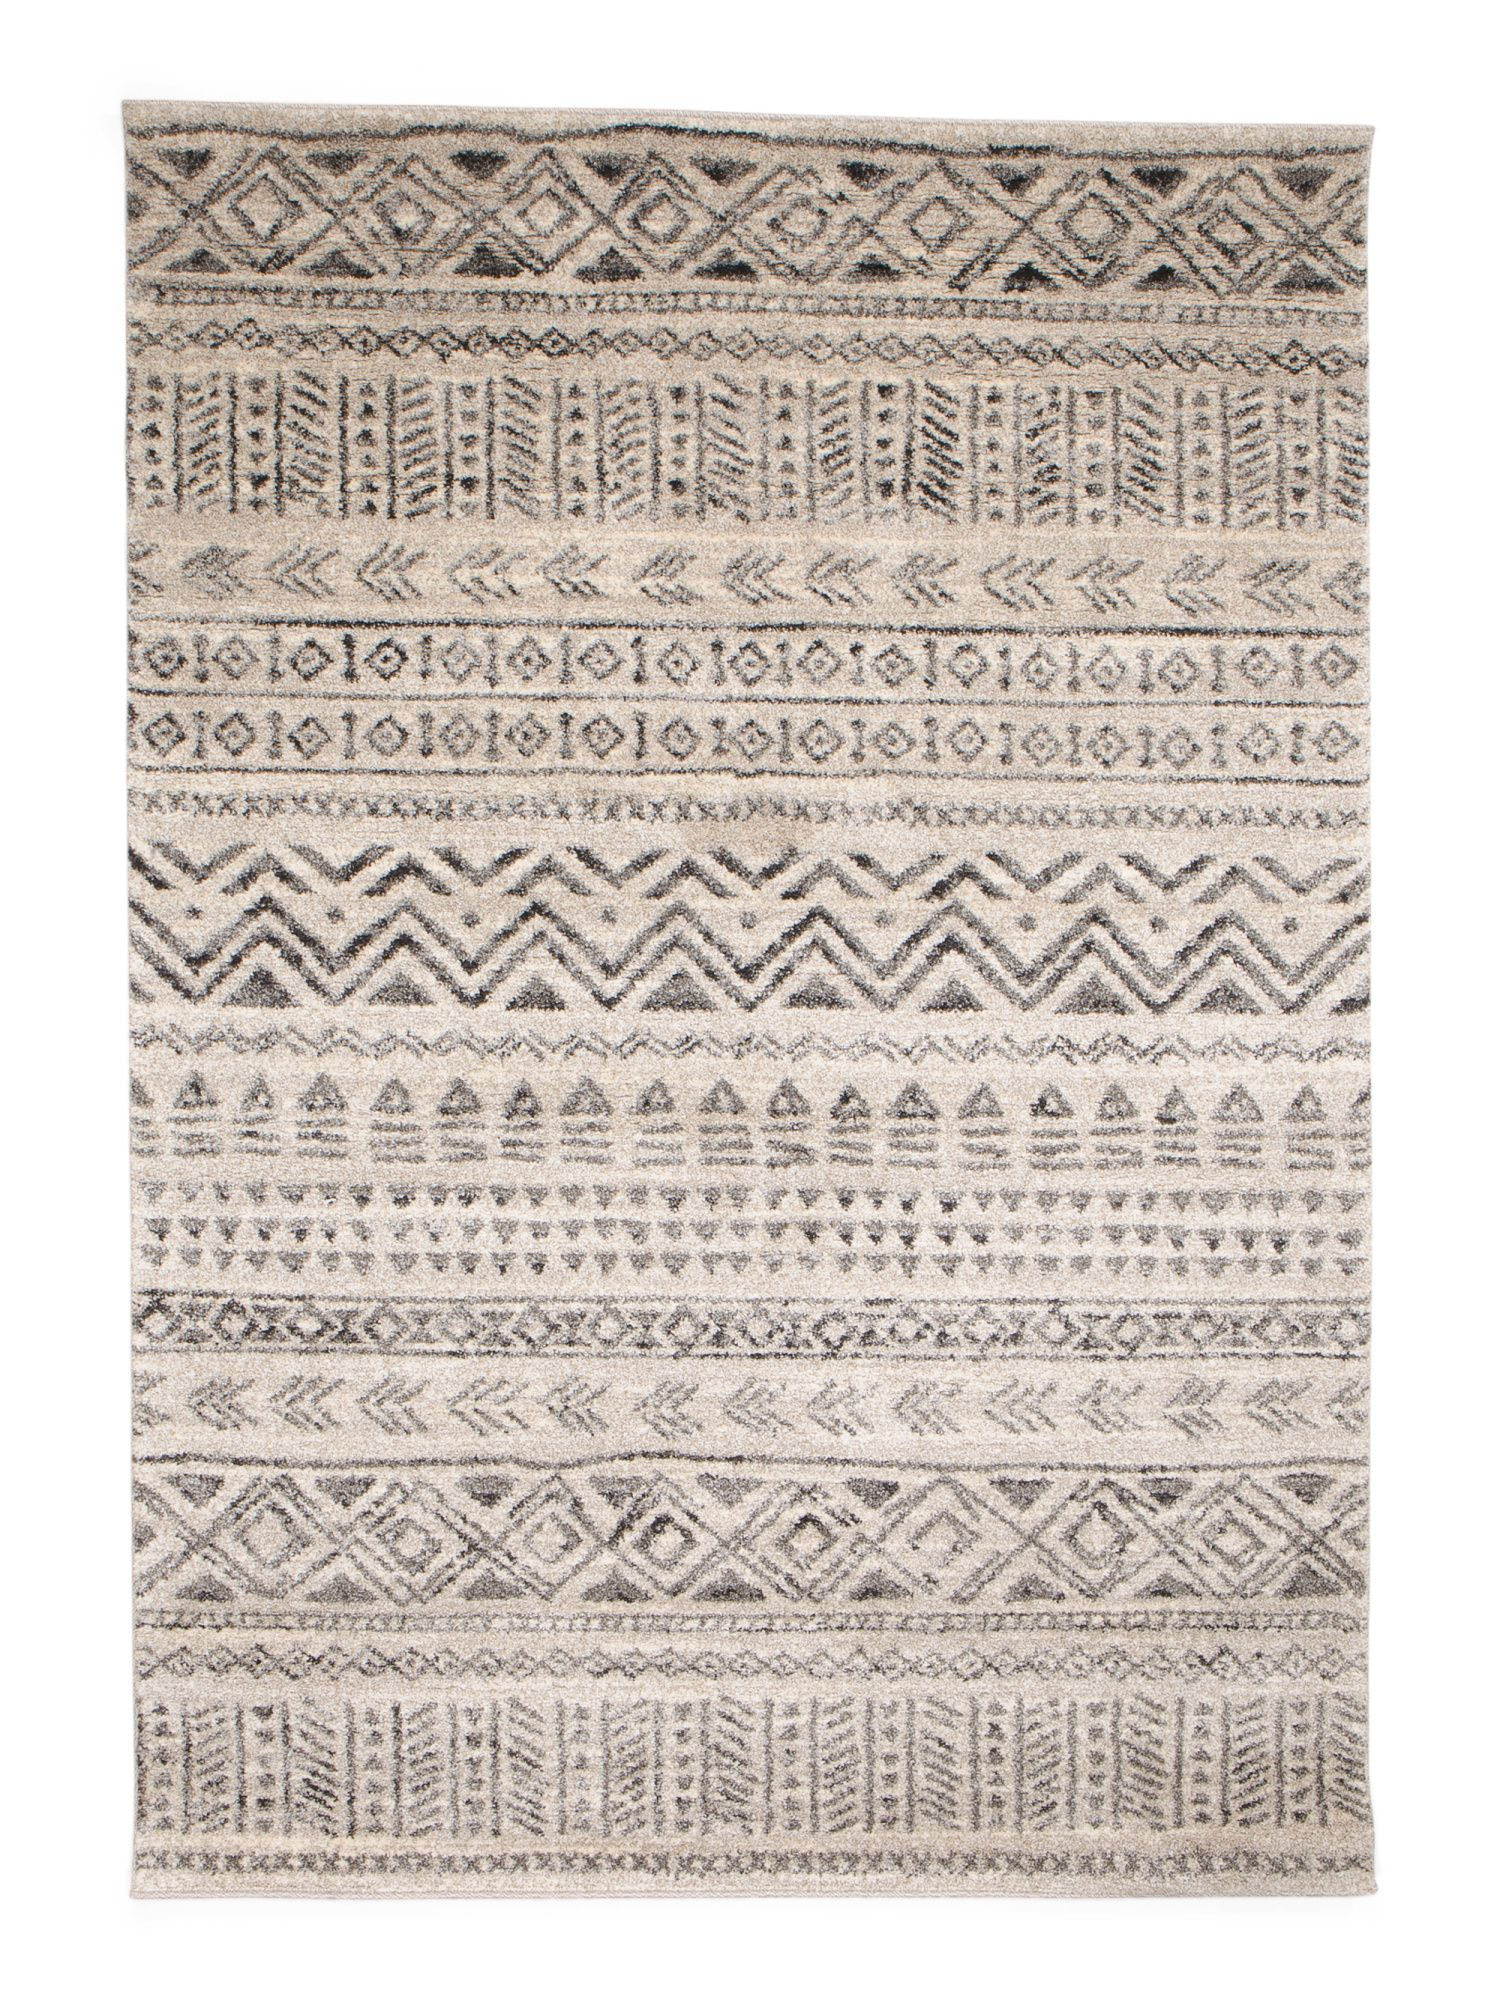 Made In Turkey Boho Area Rug In 2020 Living Room Area Rugs Rugs